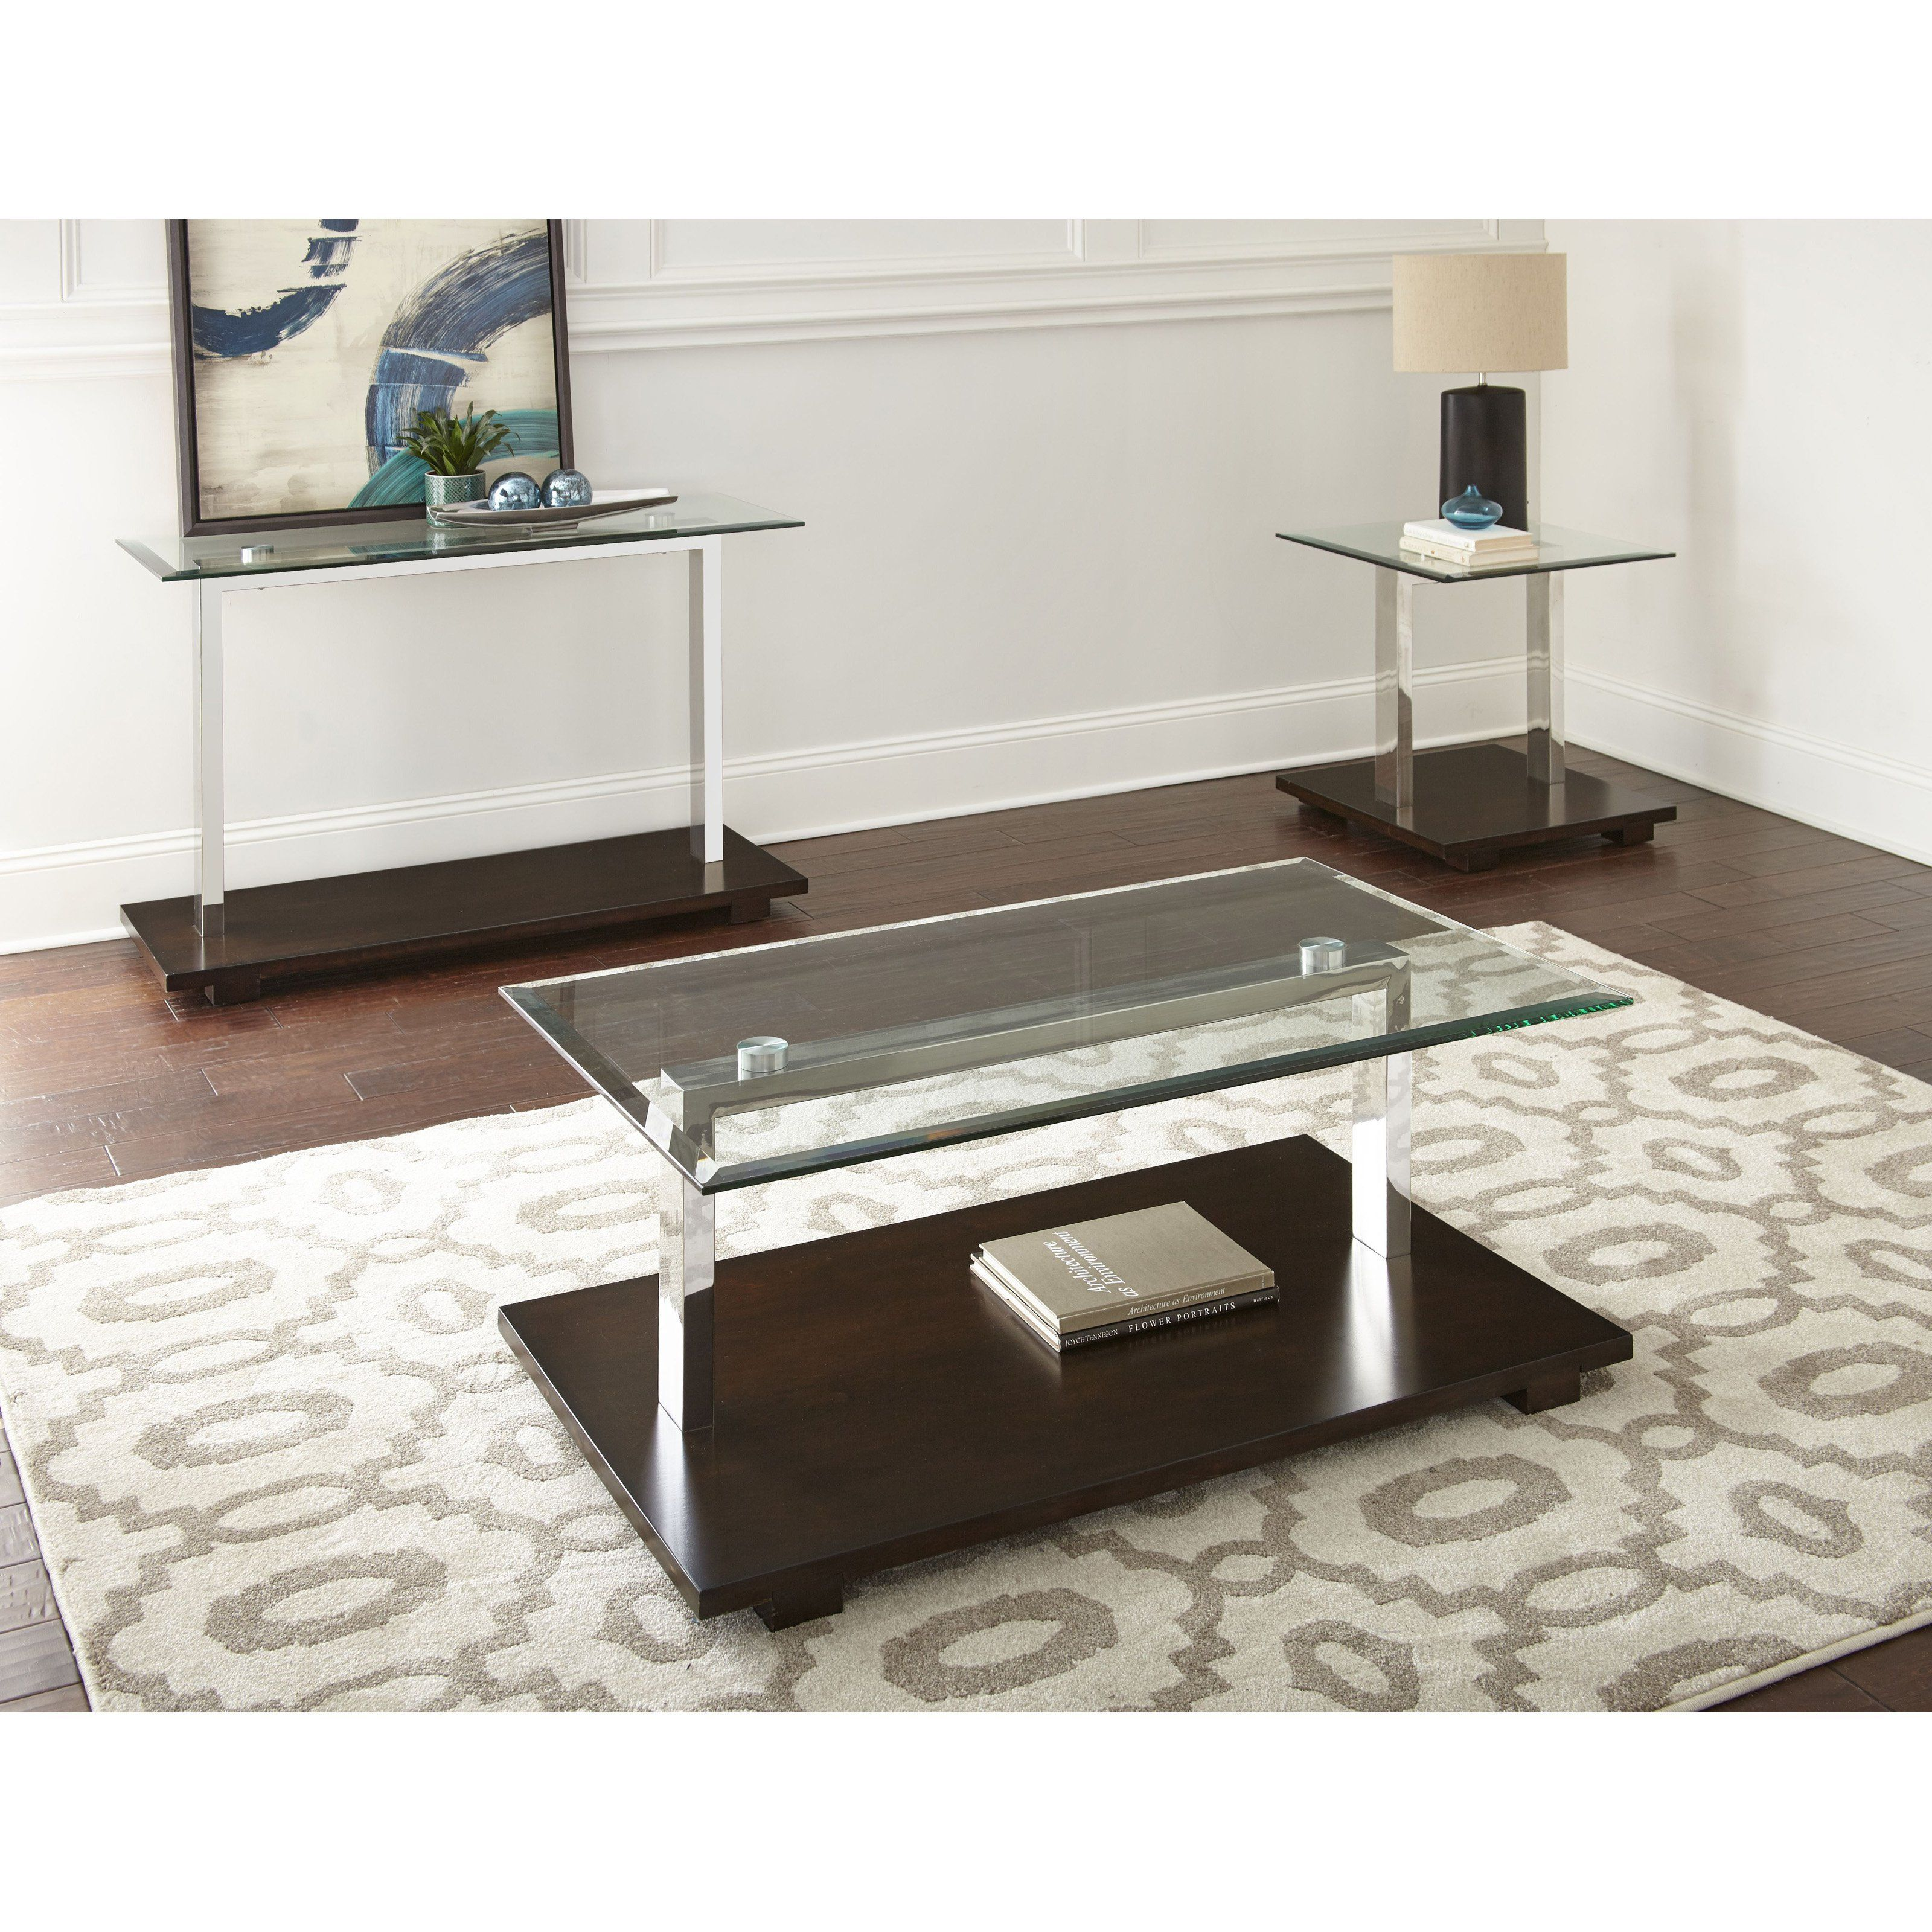 Steve Silver Kessy Cocktail Table - SSC2551